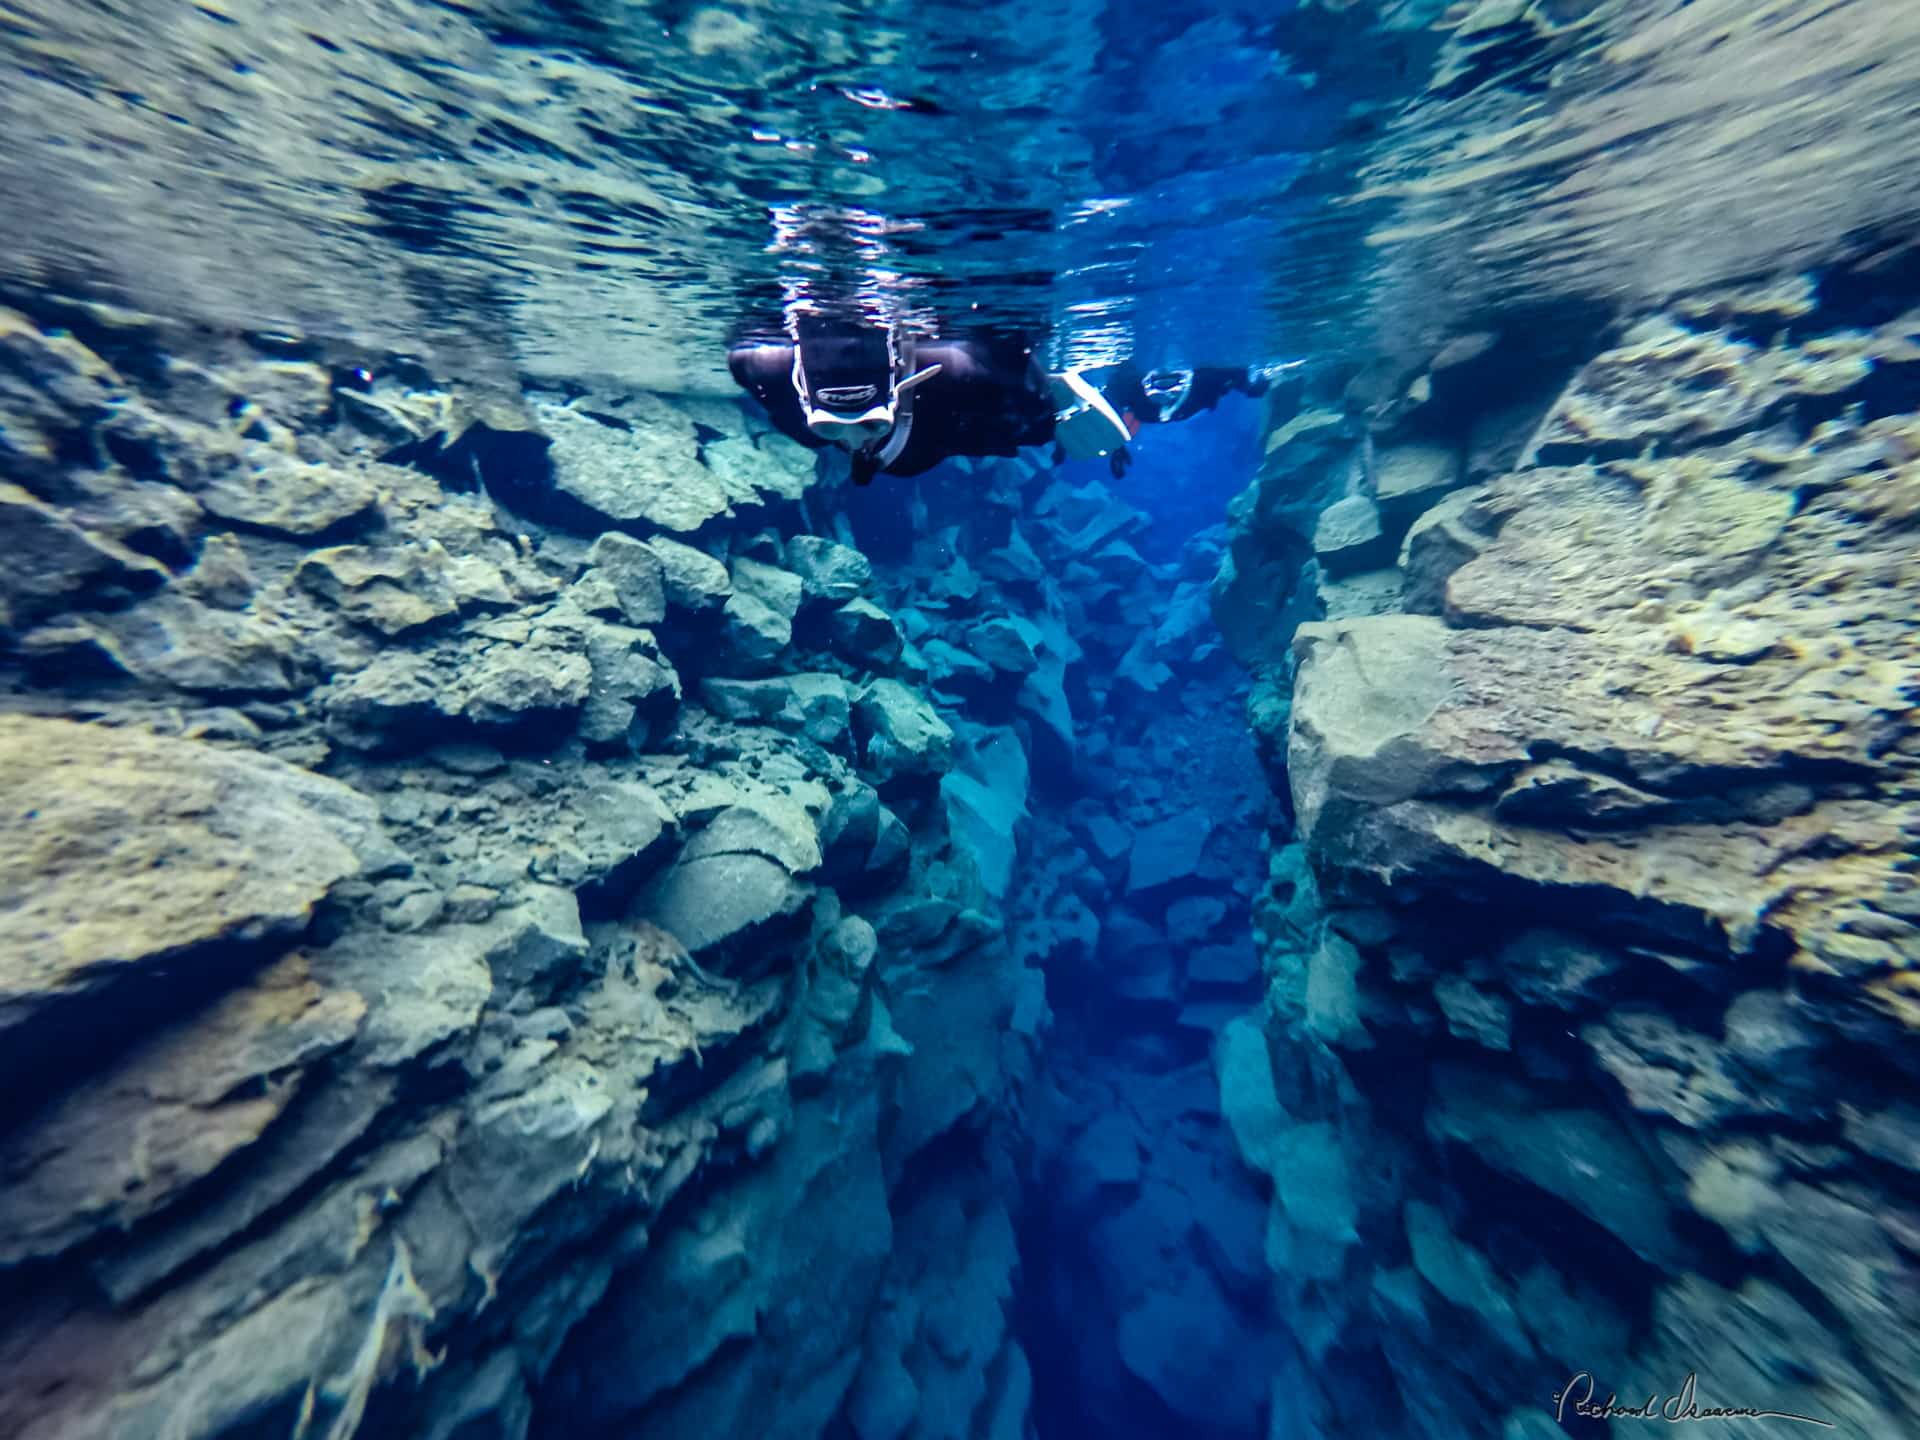 The most famous place for snorkeling or diving in Iceland is the Silfra gorge, in the Thingvellir national park.